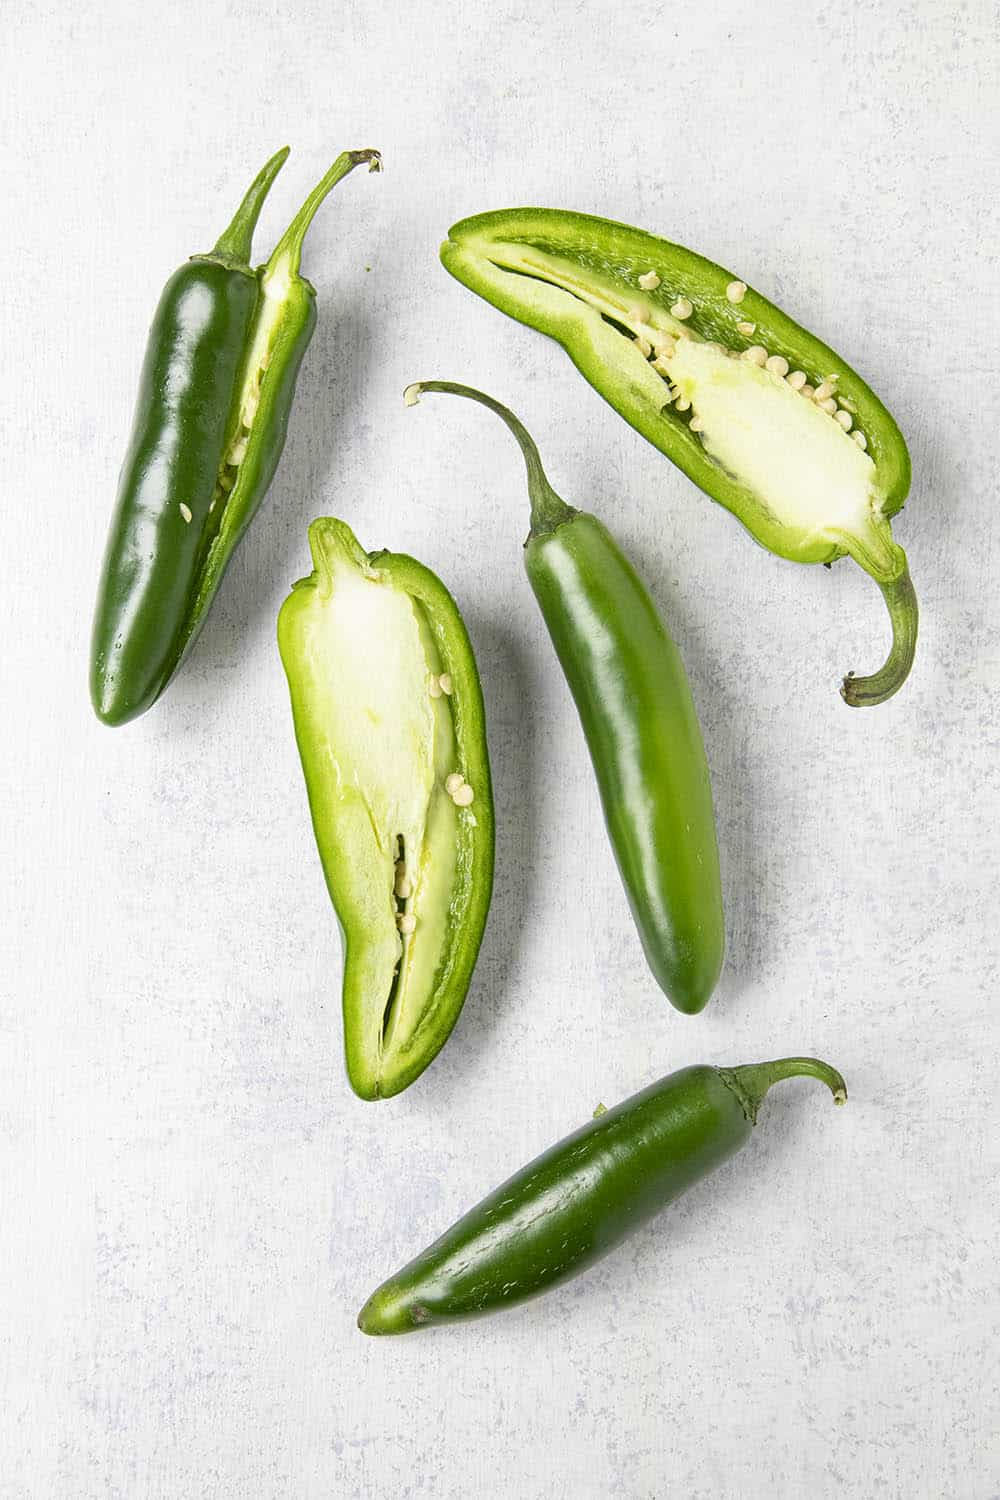 Jalapeno peppers and serrano peppers